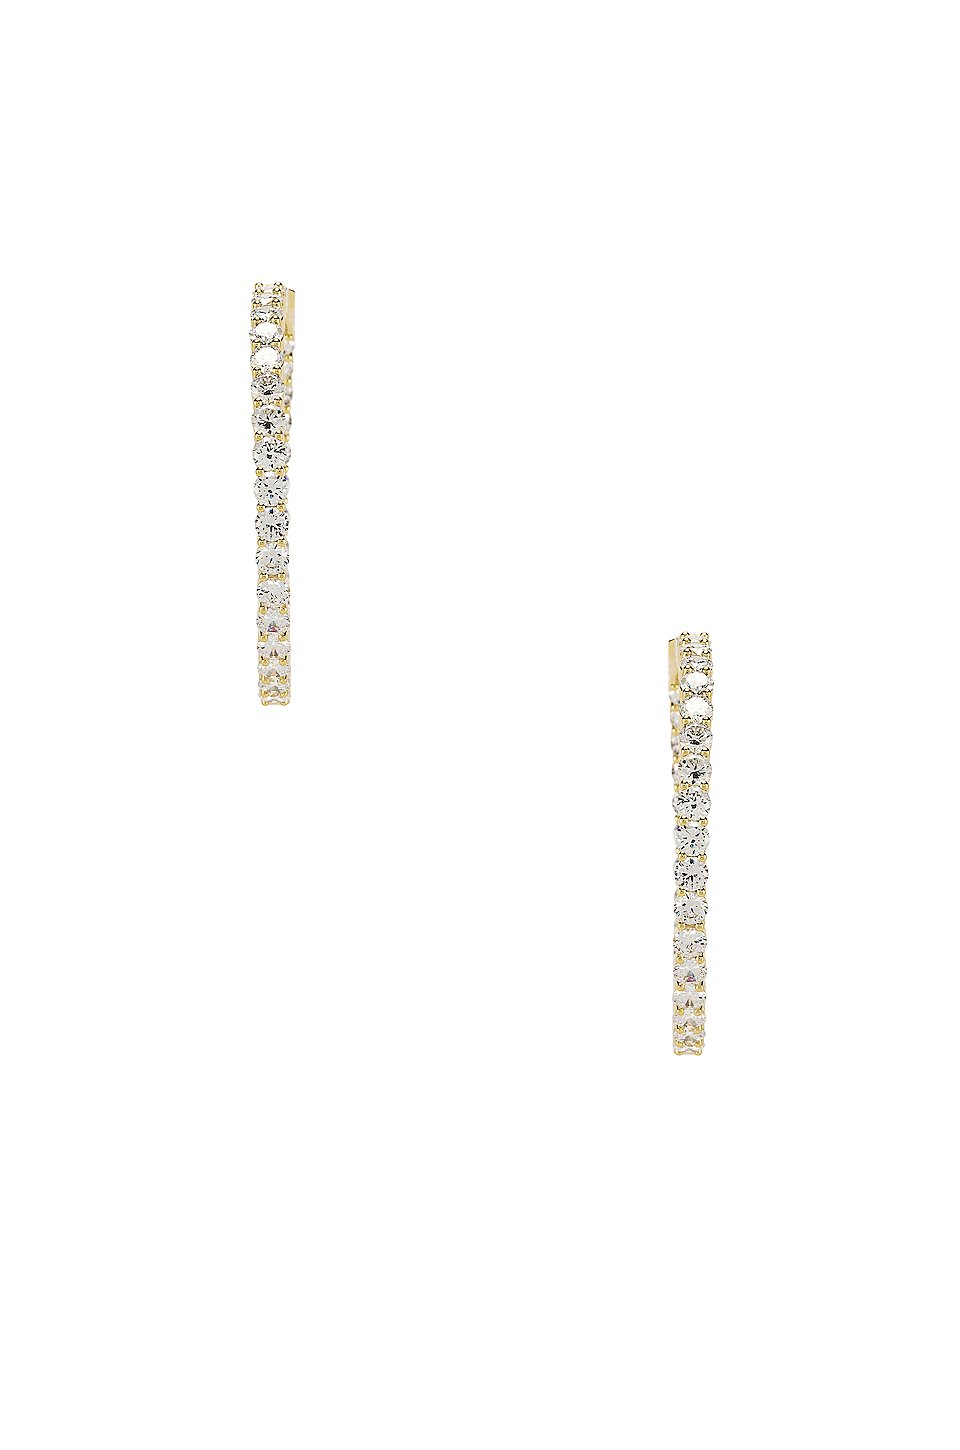 The Large Pave 925 Hoops